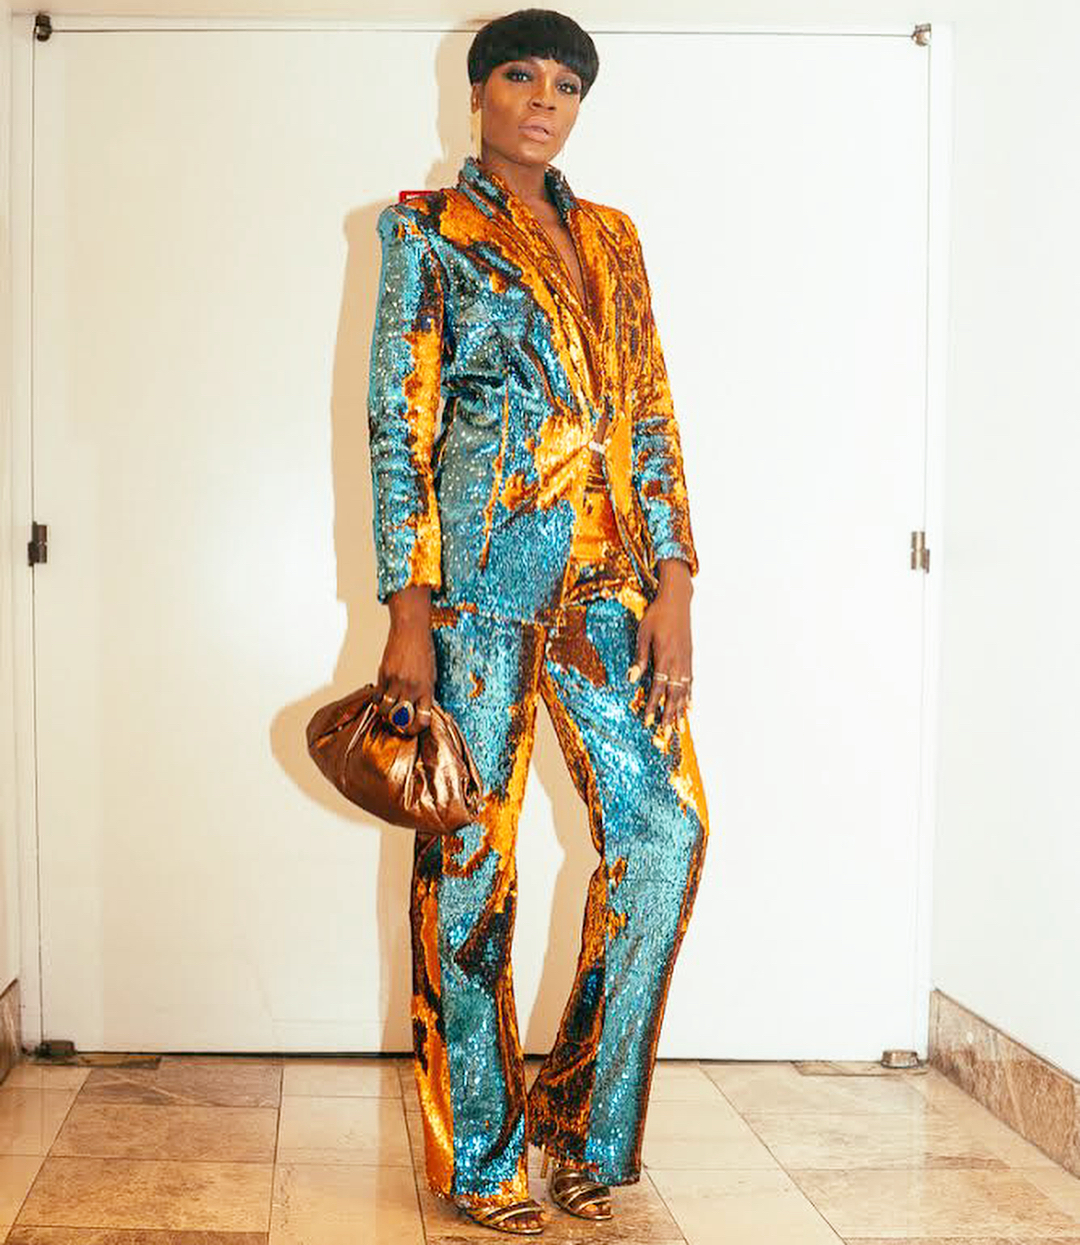 Seyi Shay Wore the Sparkliest Sequin Suit to the 2018 BMI Awards and She Looked AMAZING!